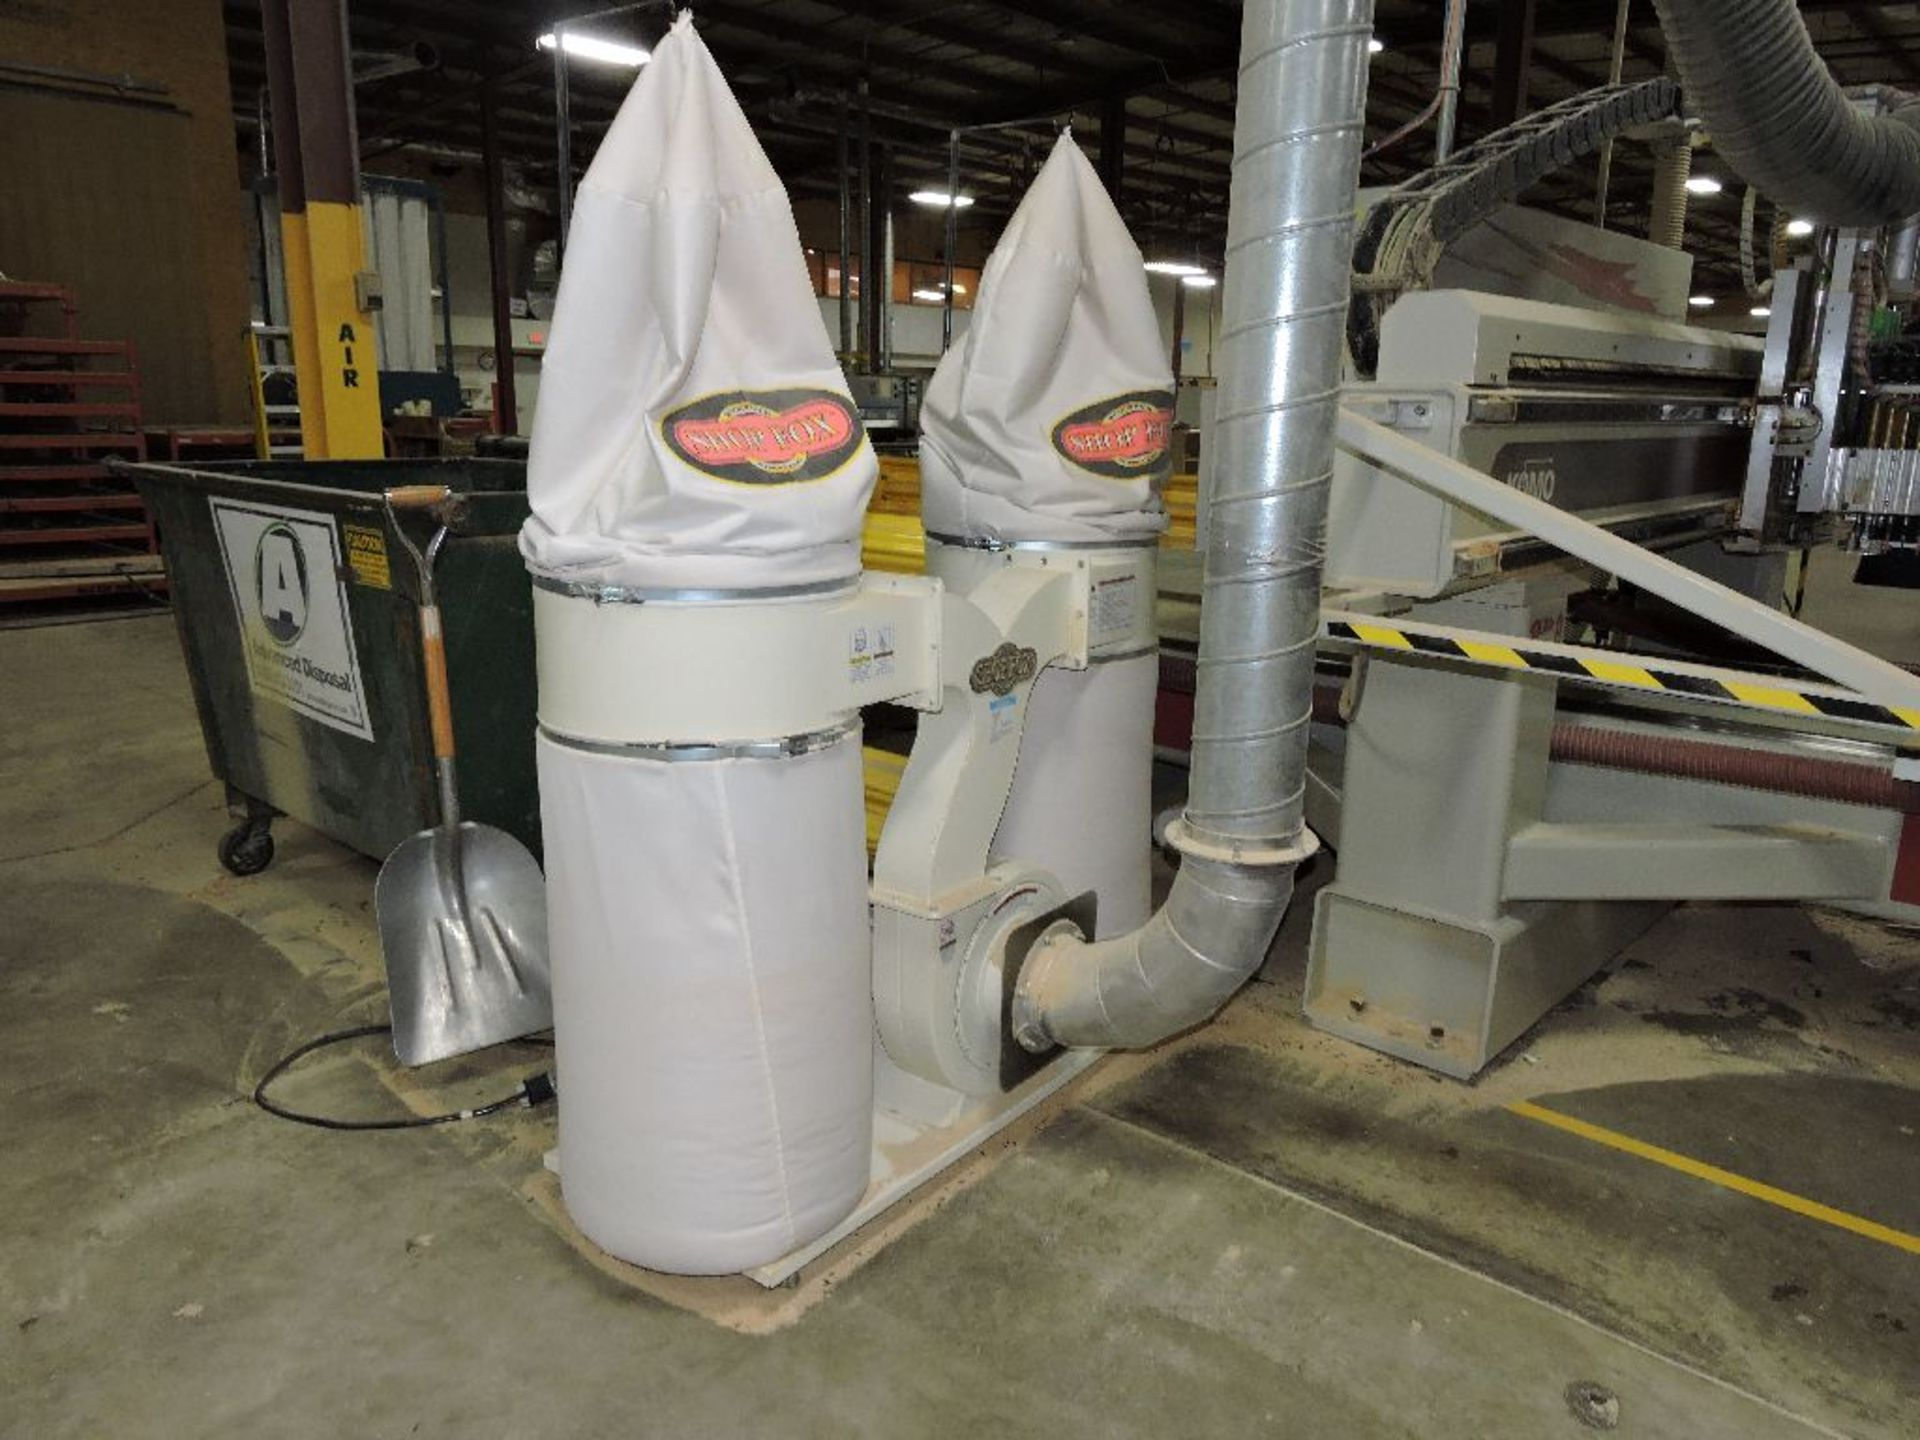 Lot 010A - 2010 Twin Sack Shop Fox dust collector, 3 hp., model W1687.